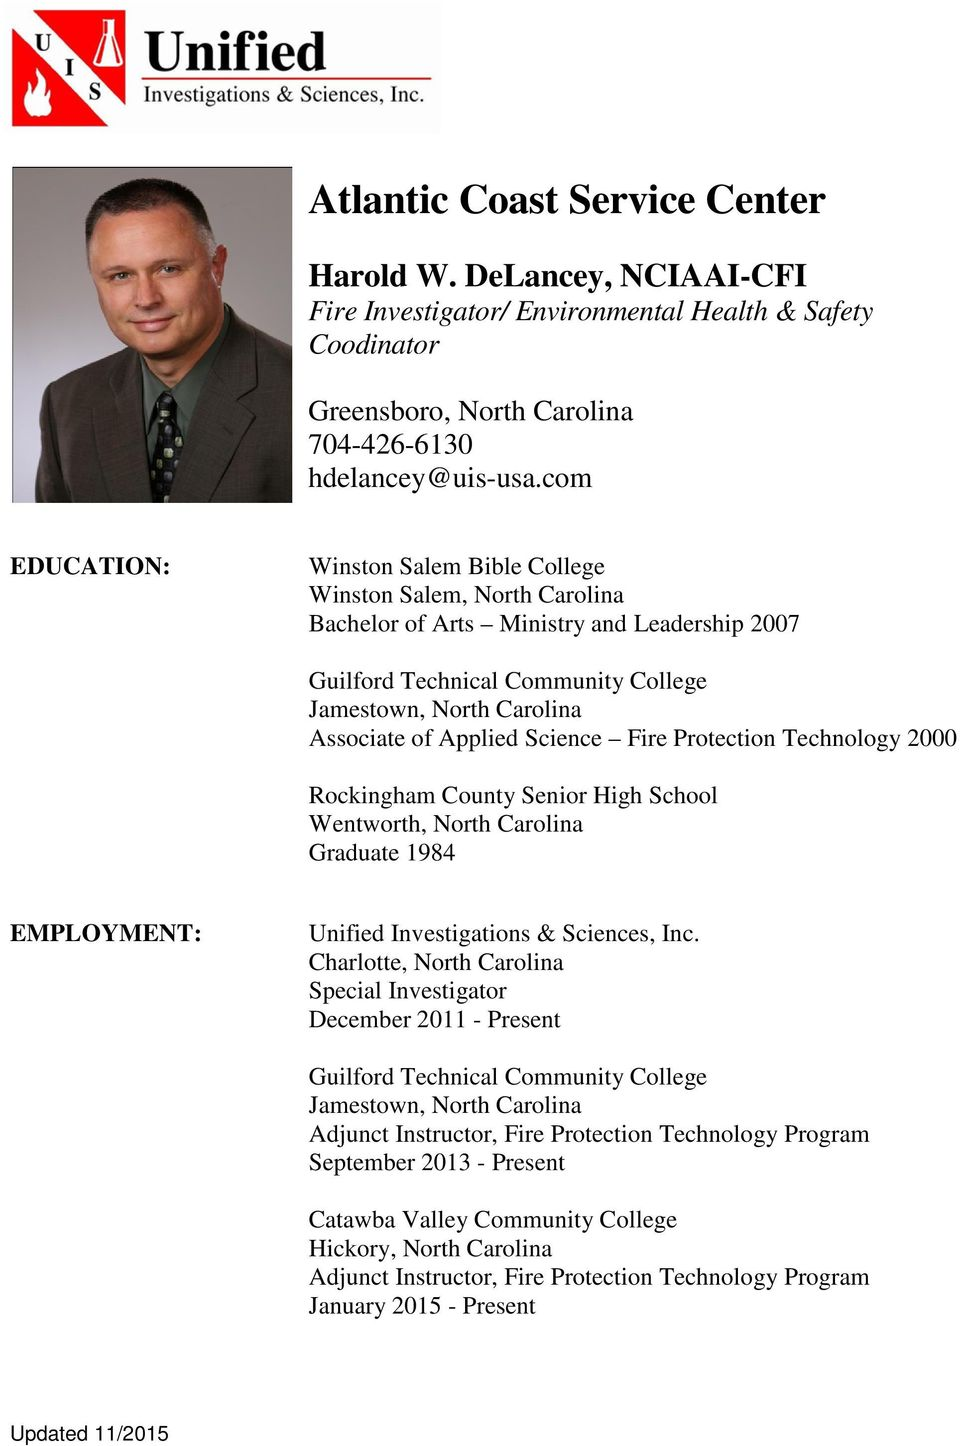 Applied Science Fire Protection Technology 2000 Rockingham County Senior High School Wentworth, North Carolina Graduate 1984 EMPLOYMENT: Unified Investigations & Sciences, Inc.